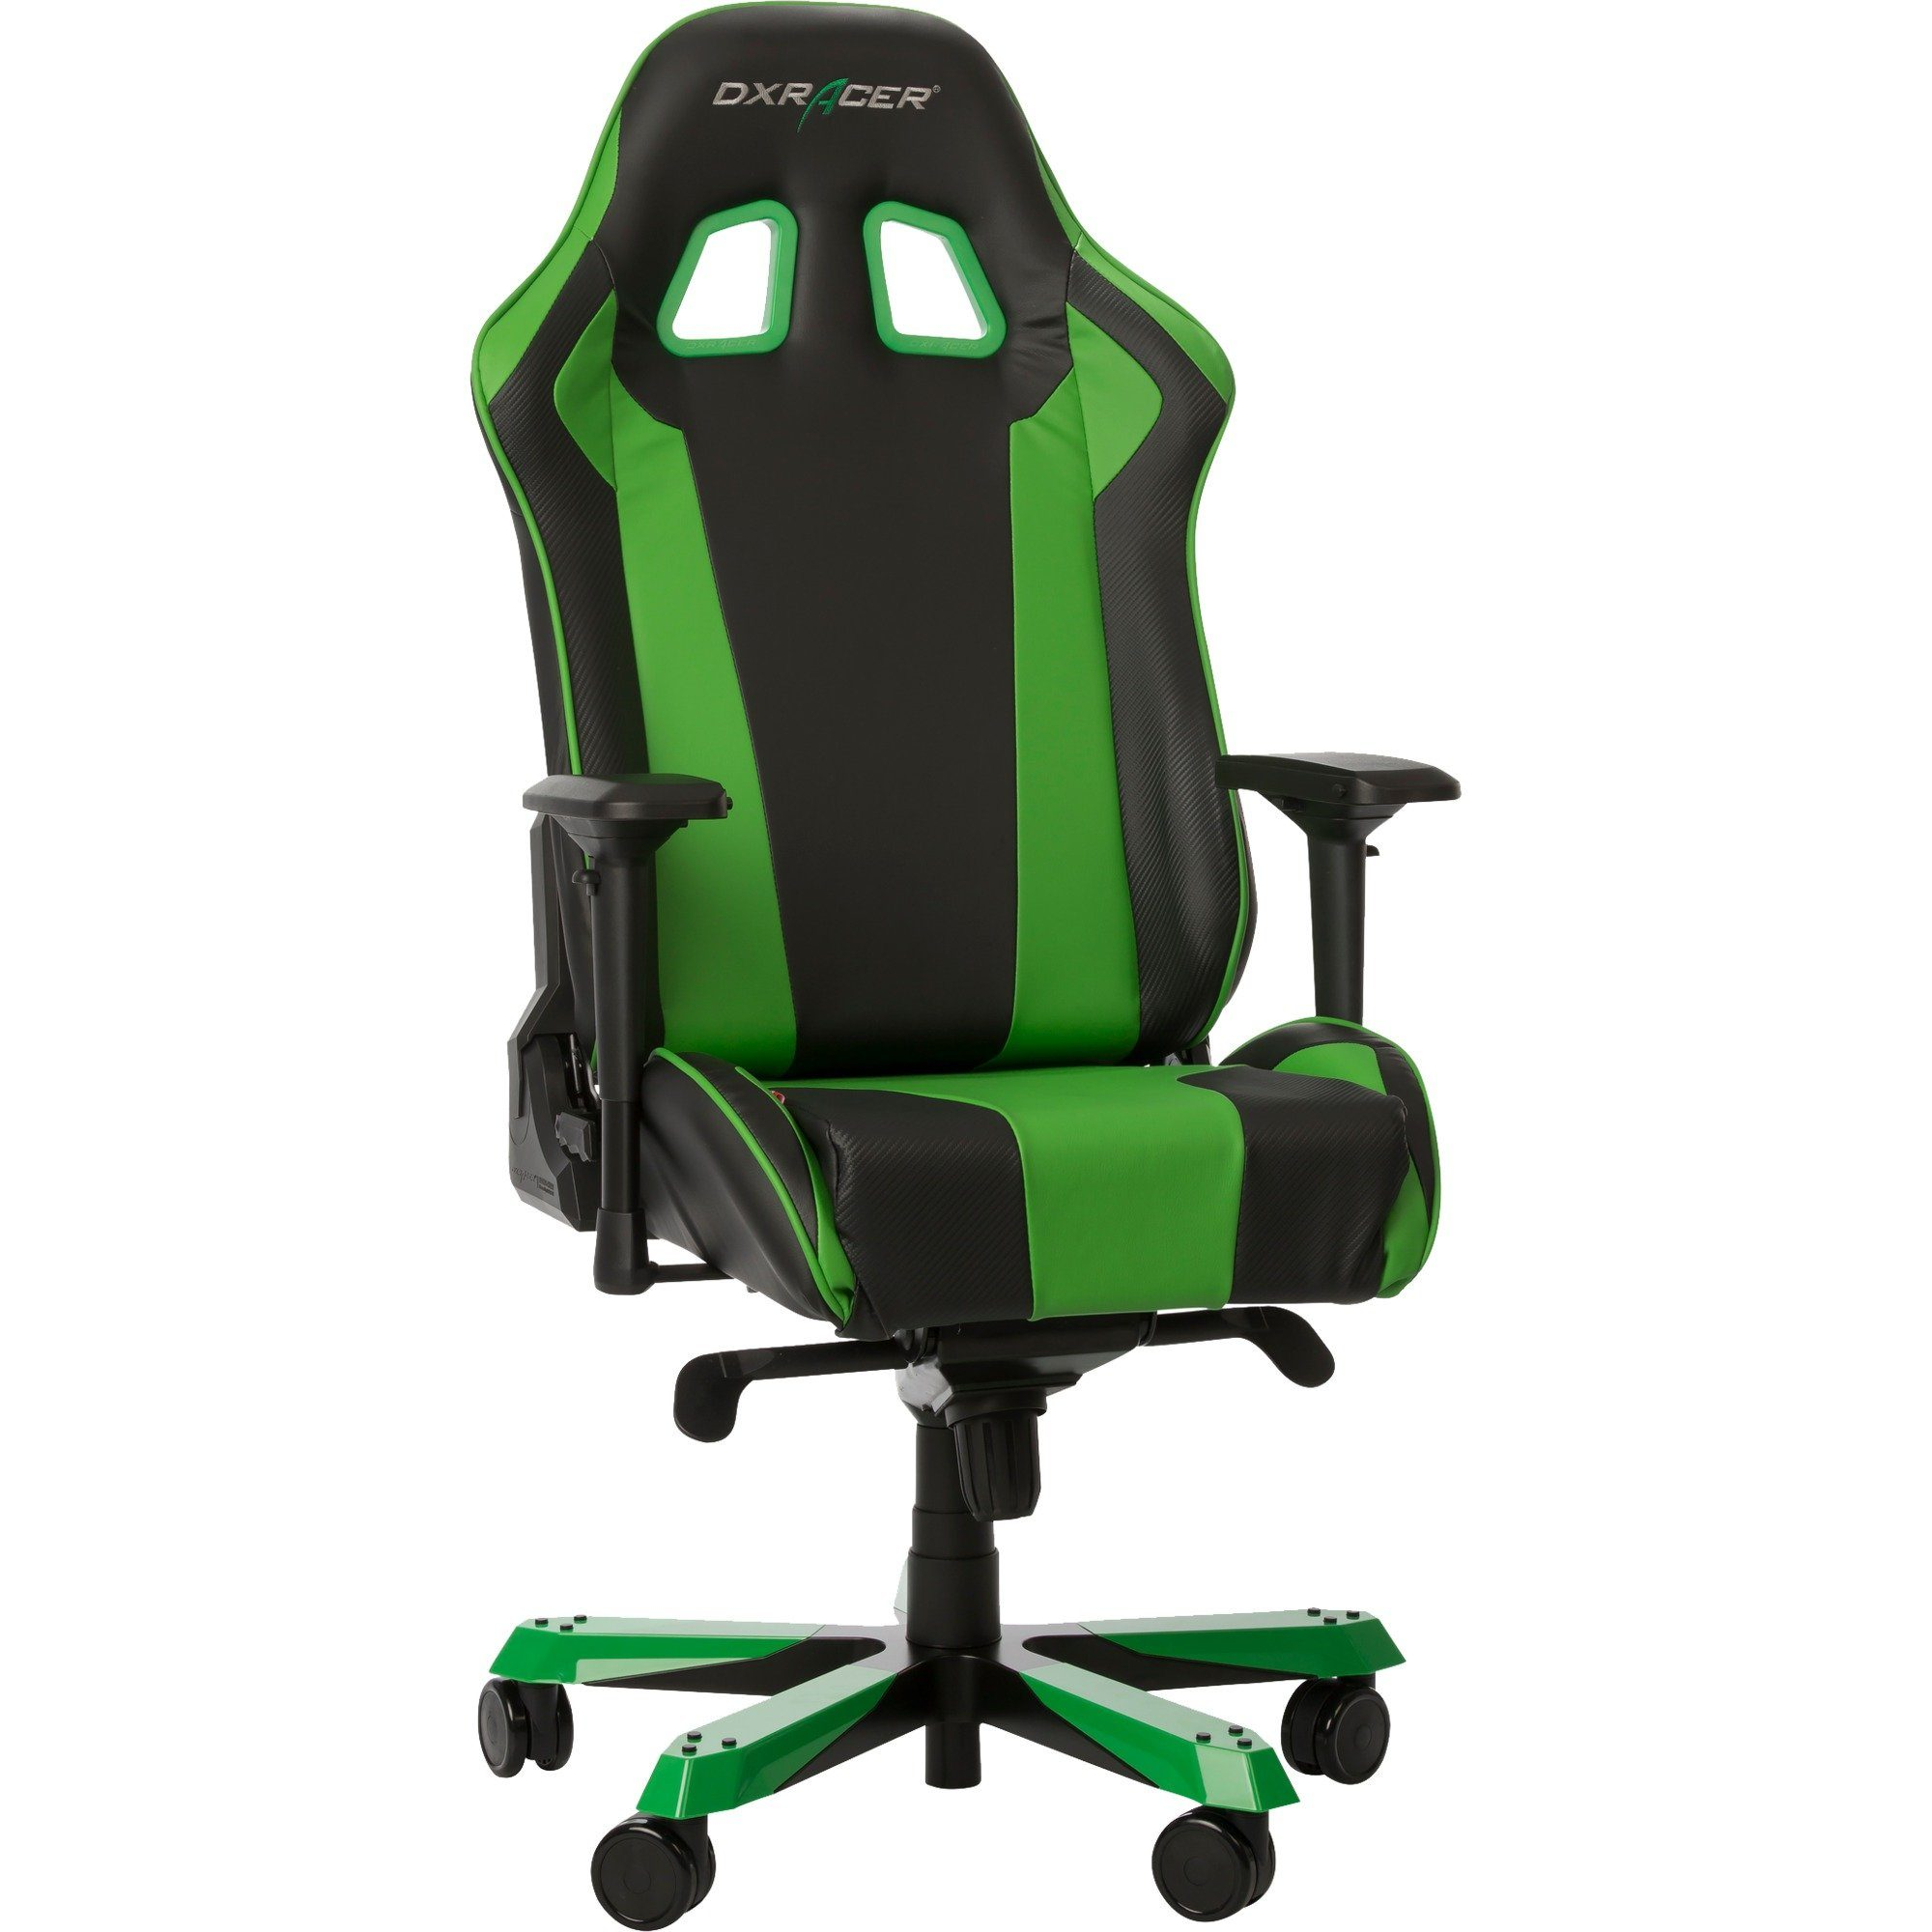 DXRacer Spielsitz »King Gaming Chair«